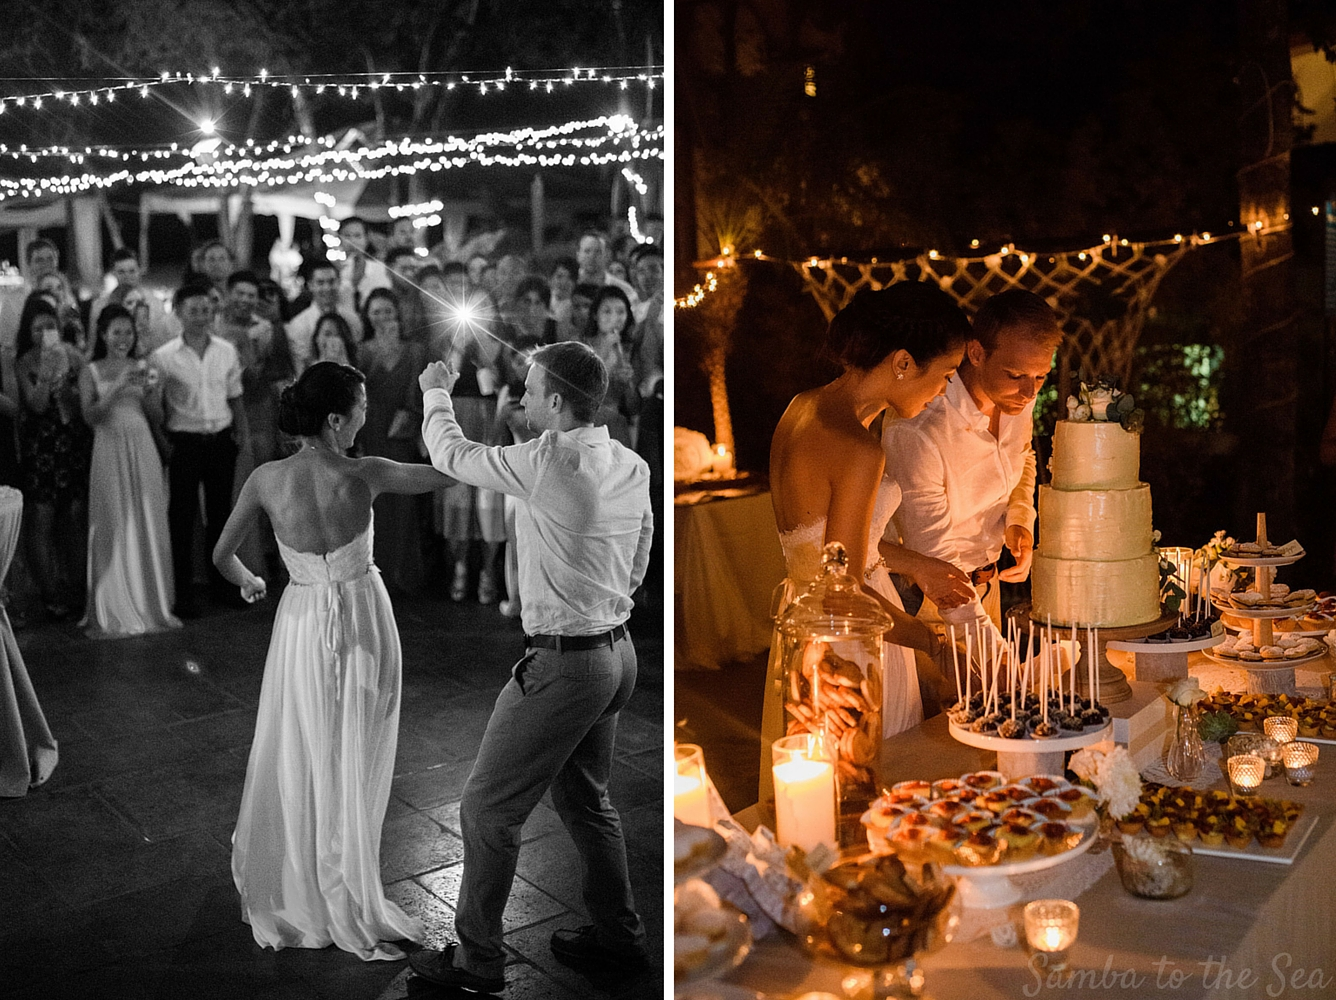 Bride and groom dancing and cutting their cake during their Langosta Beach Club wedding. Photographed by Kristen M. Brown, Samba to the Sea Photography.